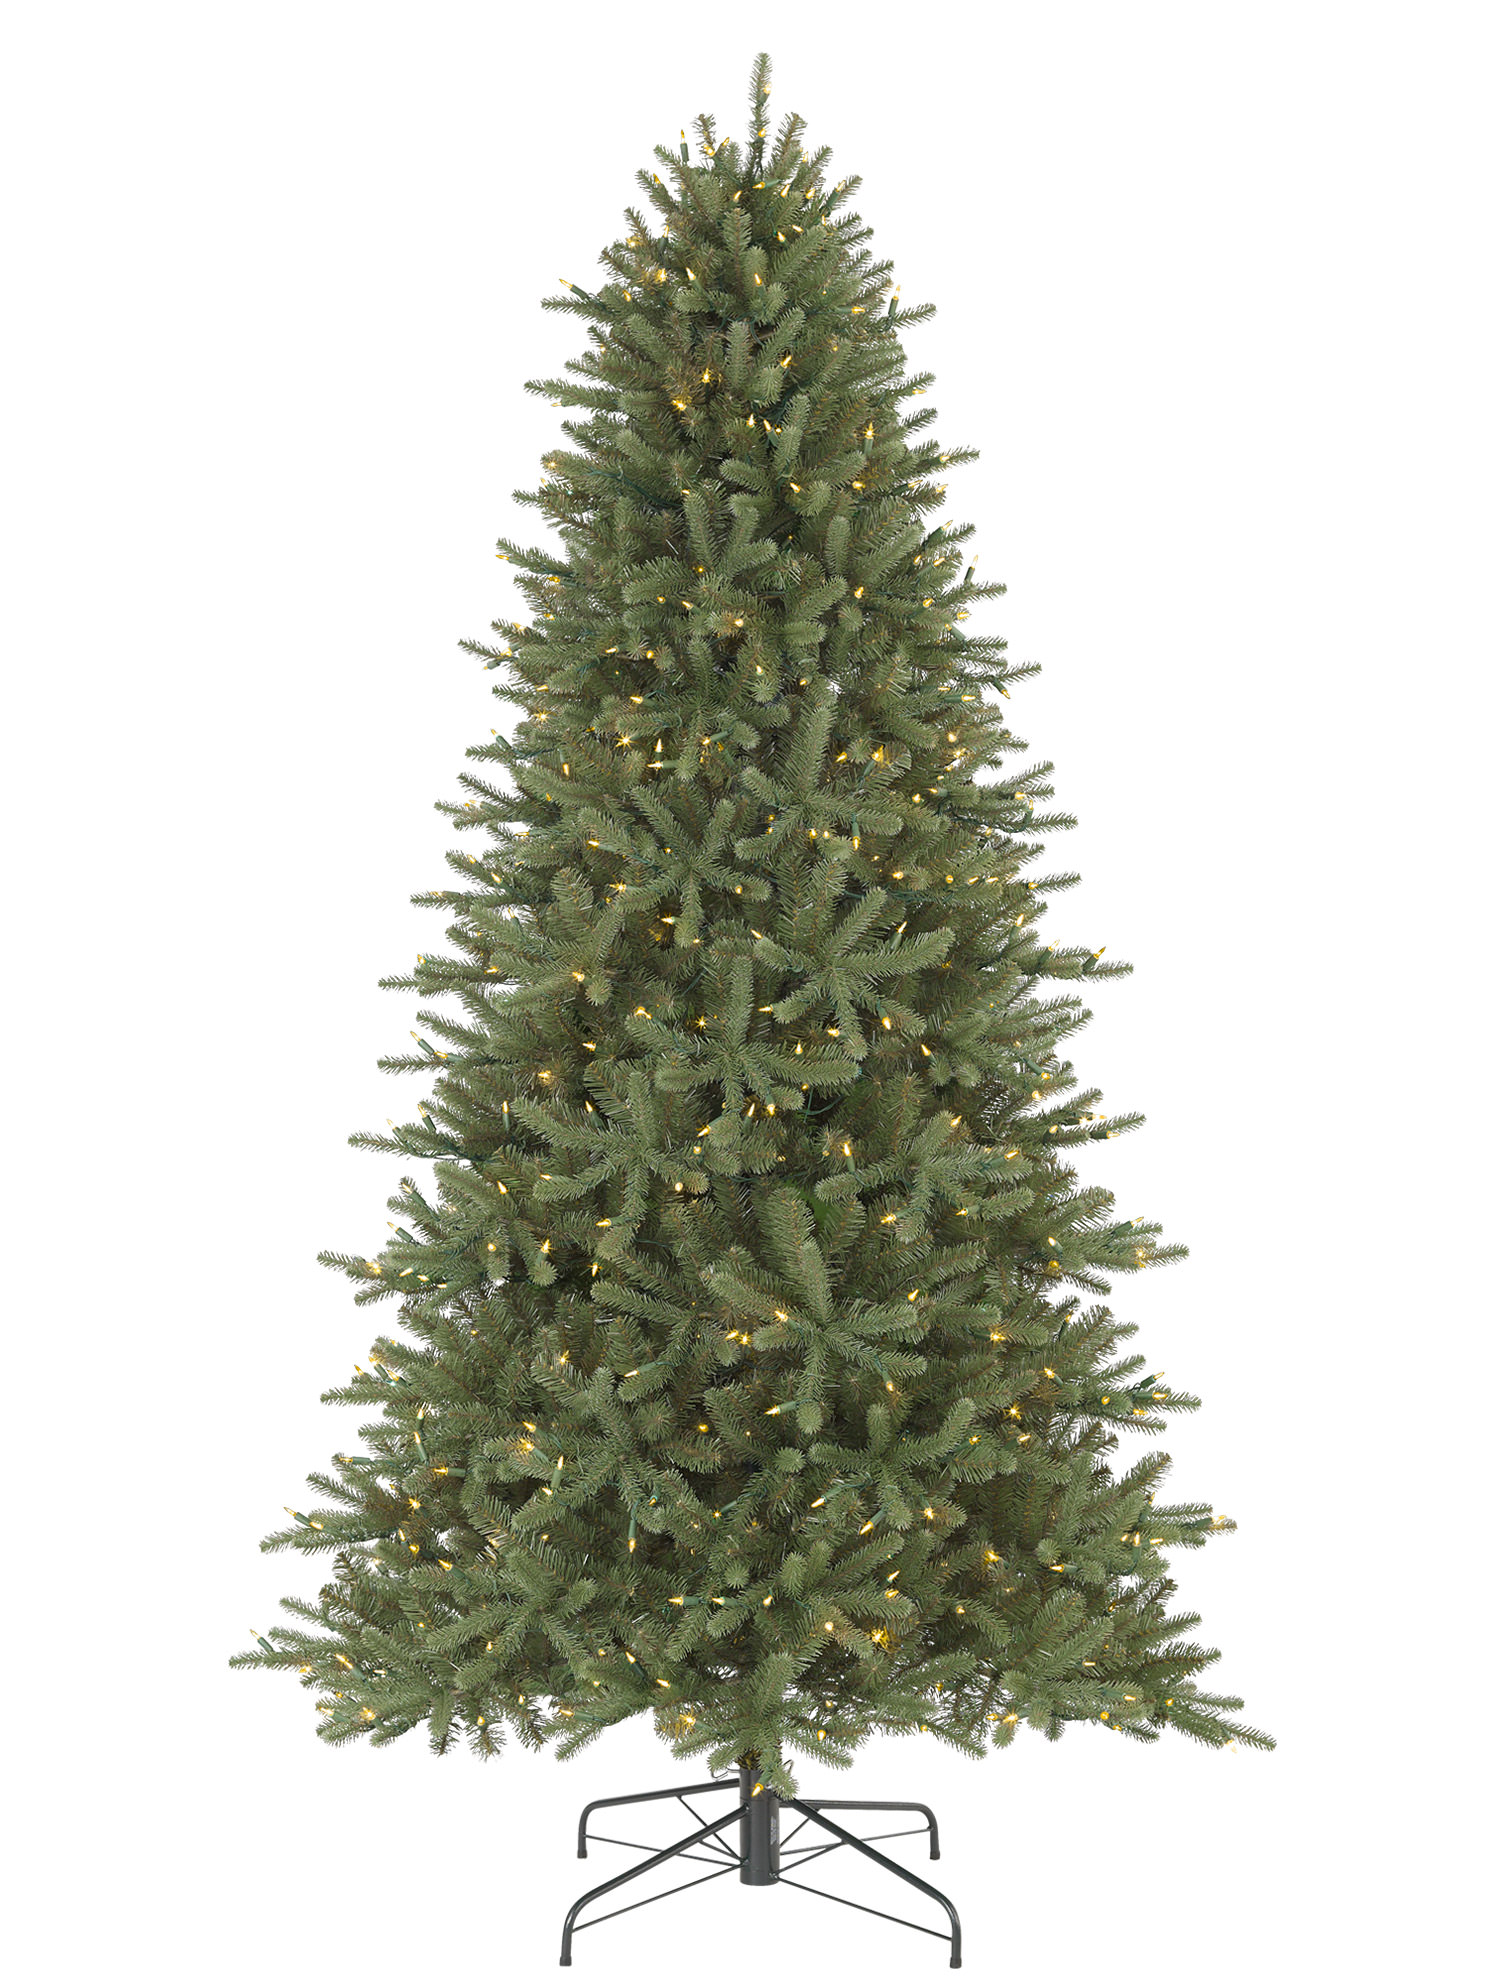 Black Friday Deals On Balsam Hill Christmas Trees Balsam